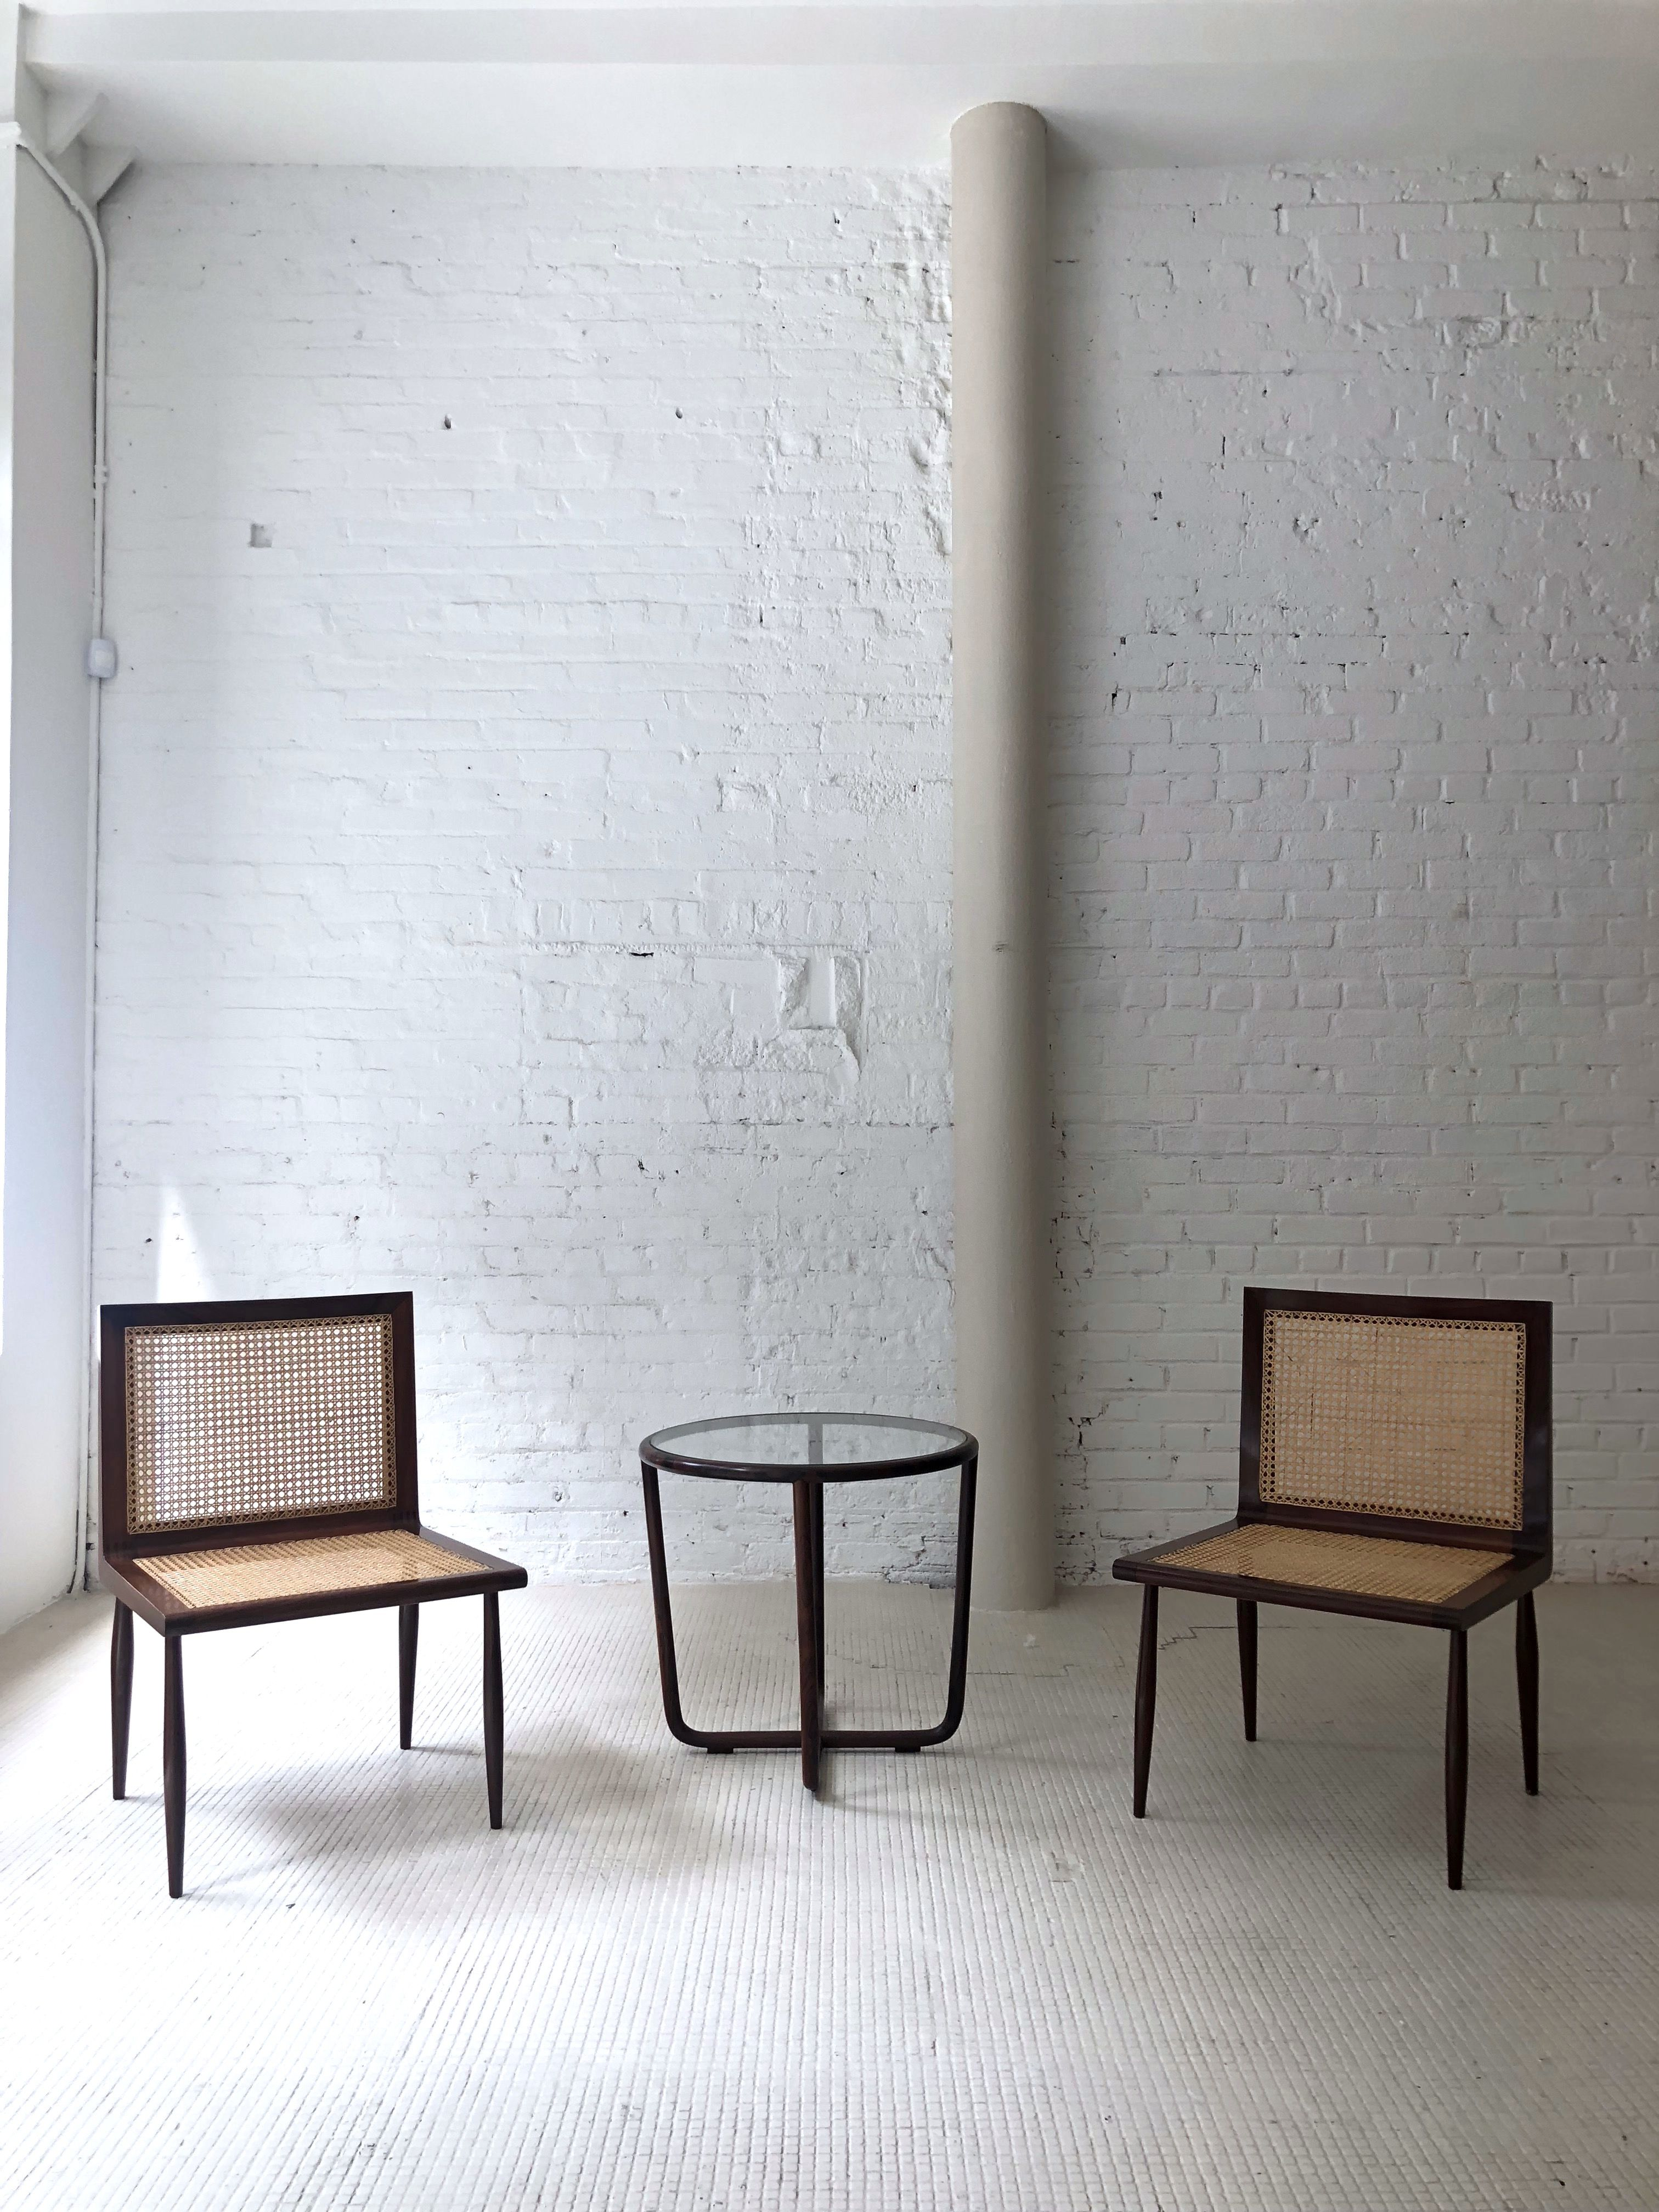 Vintage Low Bedroom chairs and side table by Joaquim Tenreiro